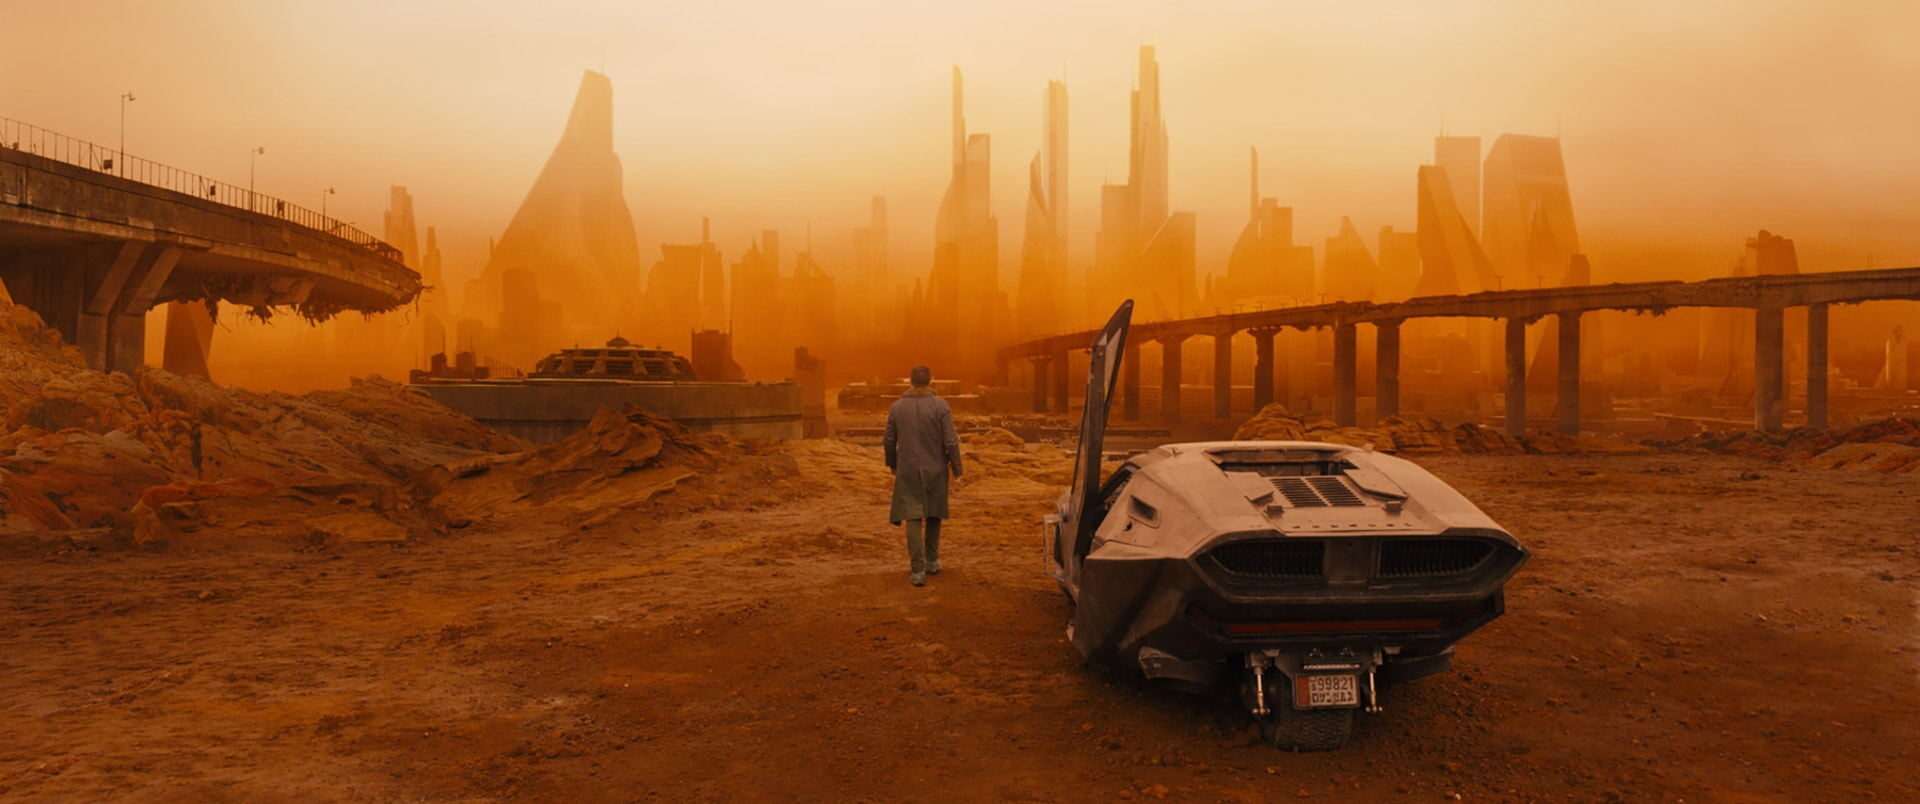 "RYAN GOSLING as K in Alcon Entertainment's sci fi thriller ""BLADE RUNNER 2049,"" a Warner Bros. Pictures and Sony Pictures Entertainment release, domestic distribution by Warner Bros. Pictures and international distribution by Sony Pictures."